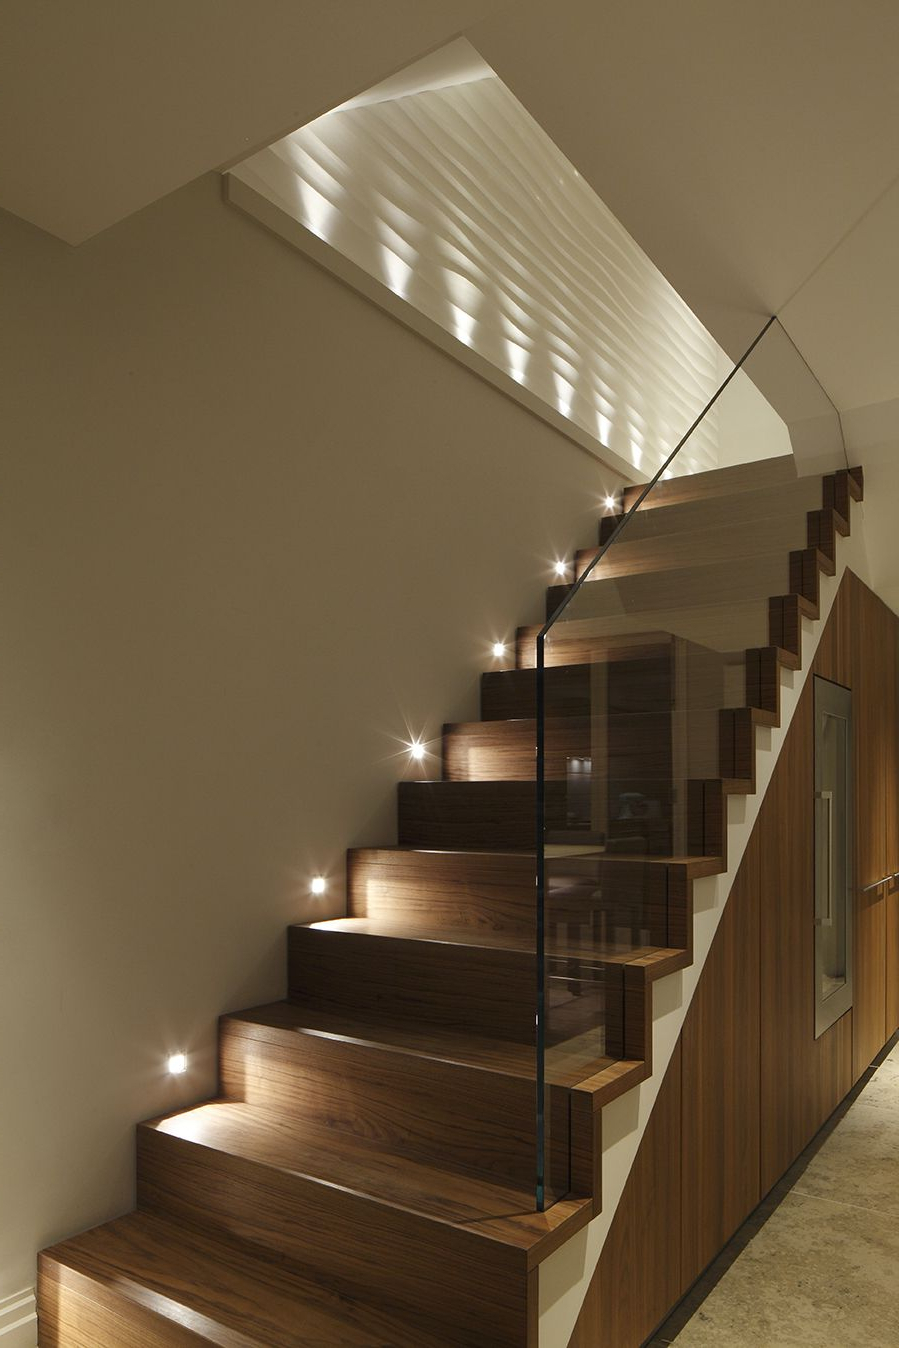 100 Project Ideas And Designs With Images Stairway Design Stairway Lighting Staircase Design